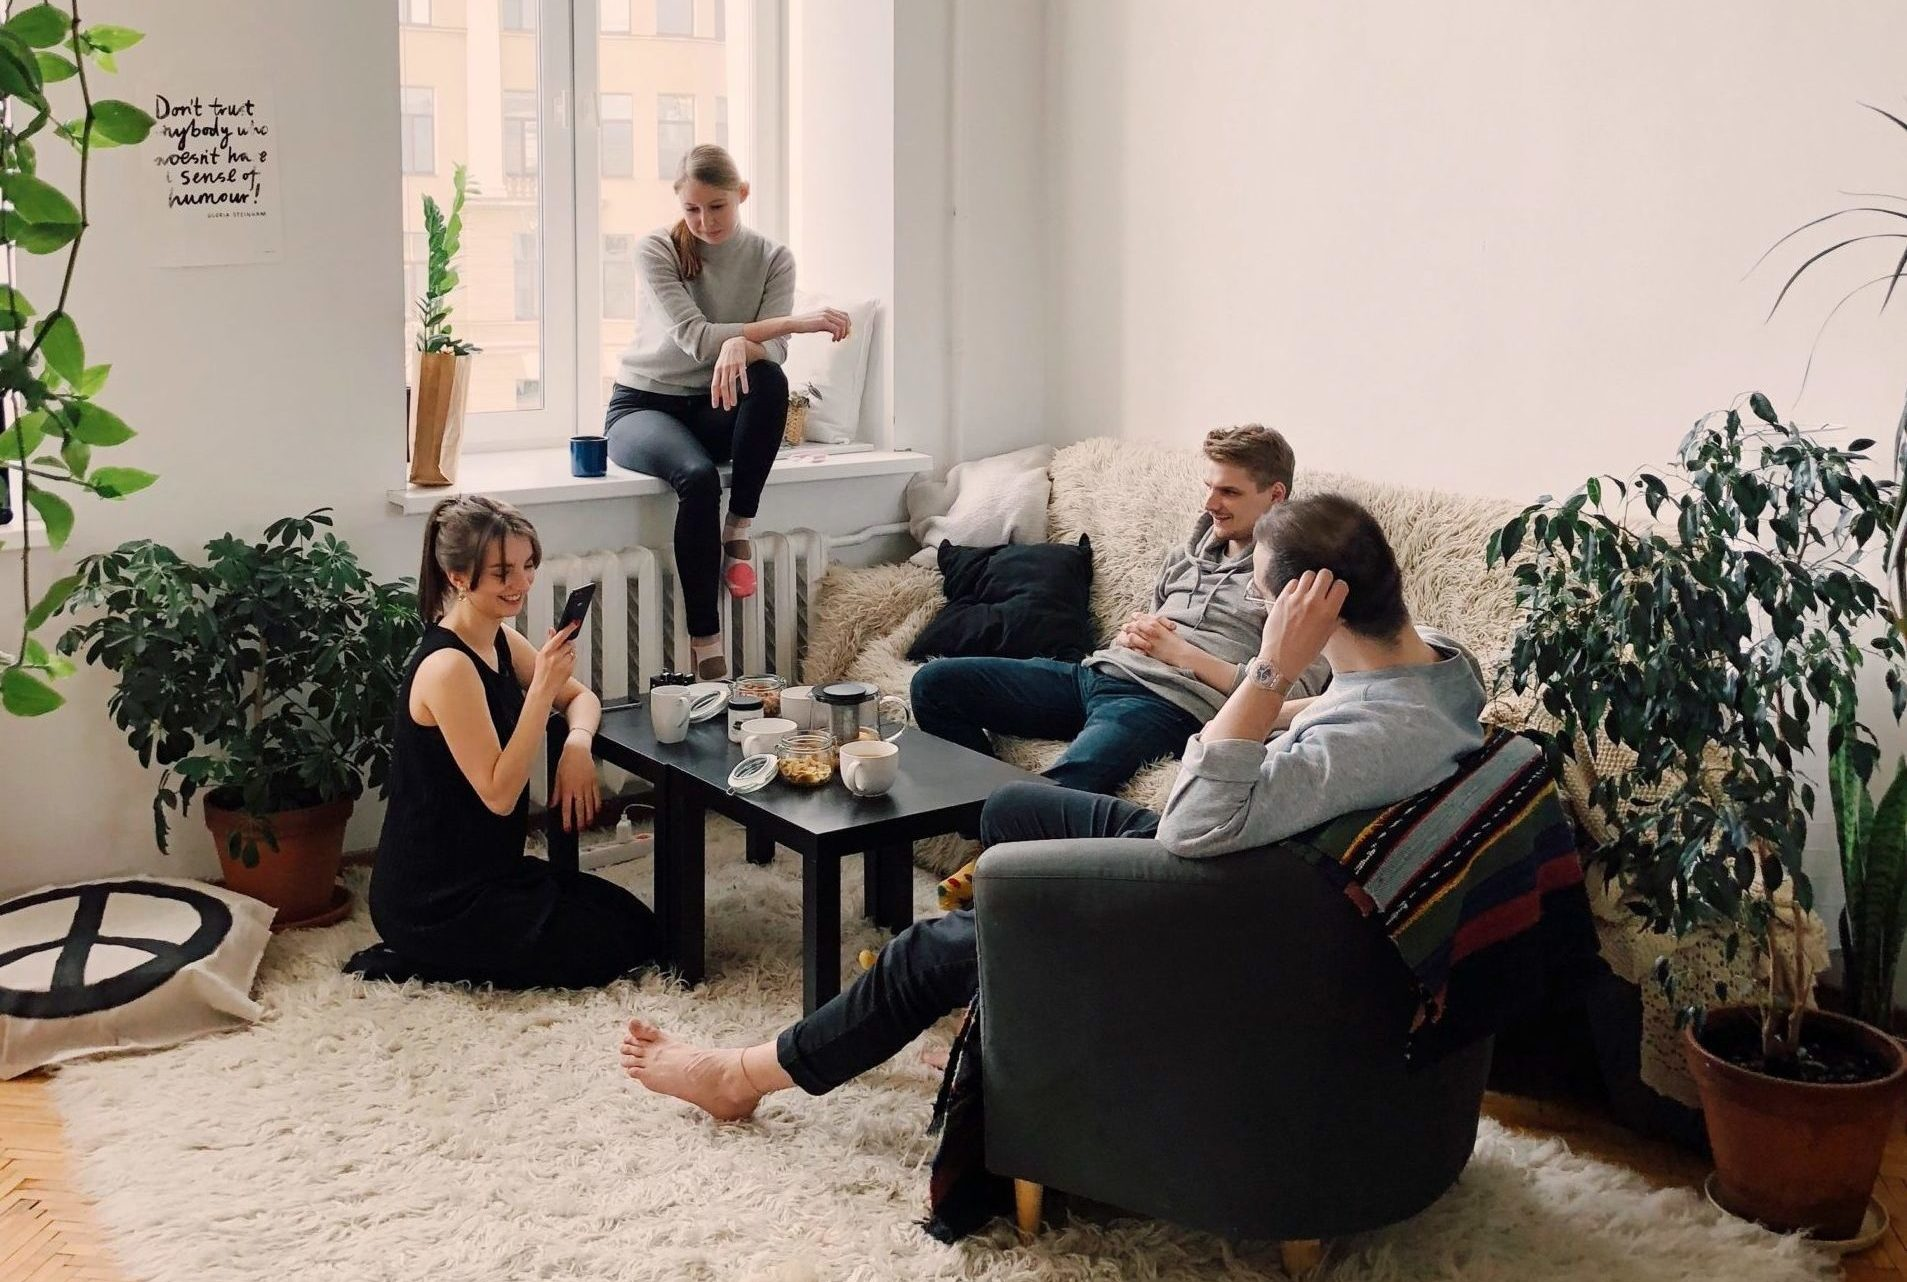 people-gathered-inside-house-sitting-on-sofa